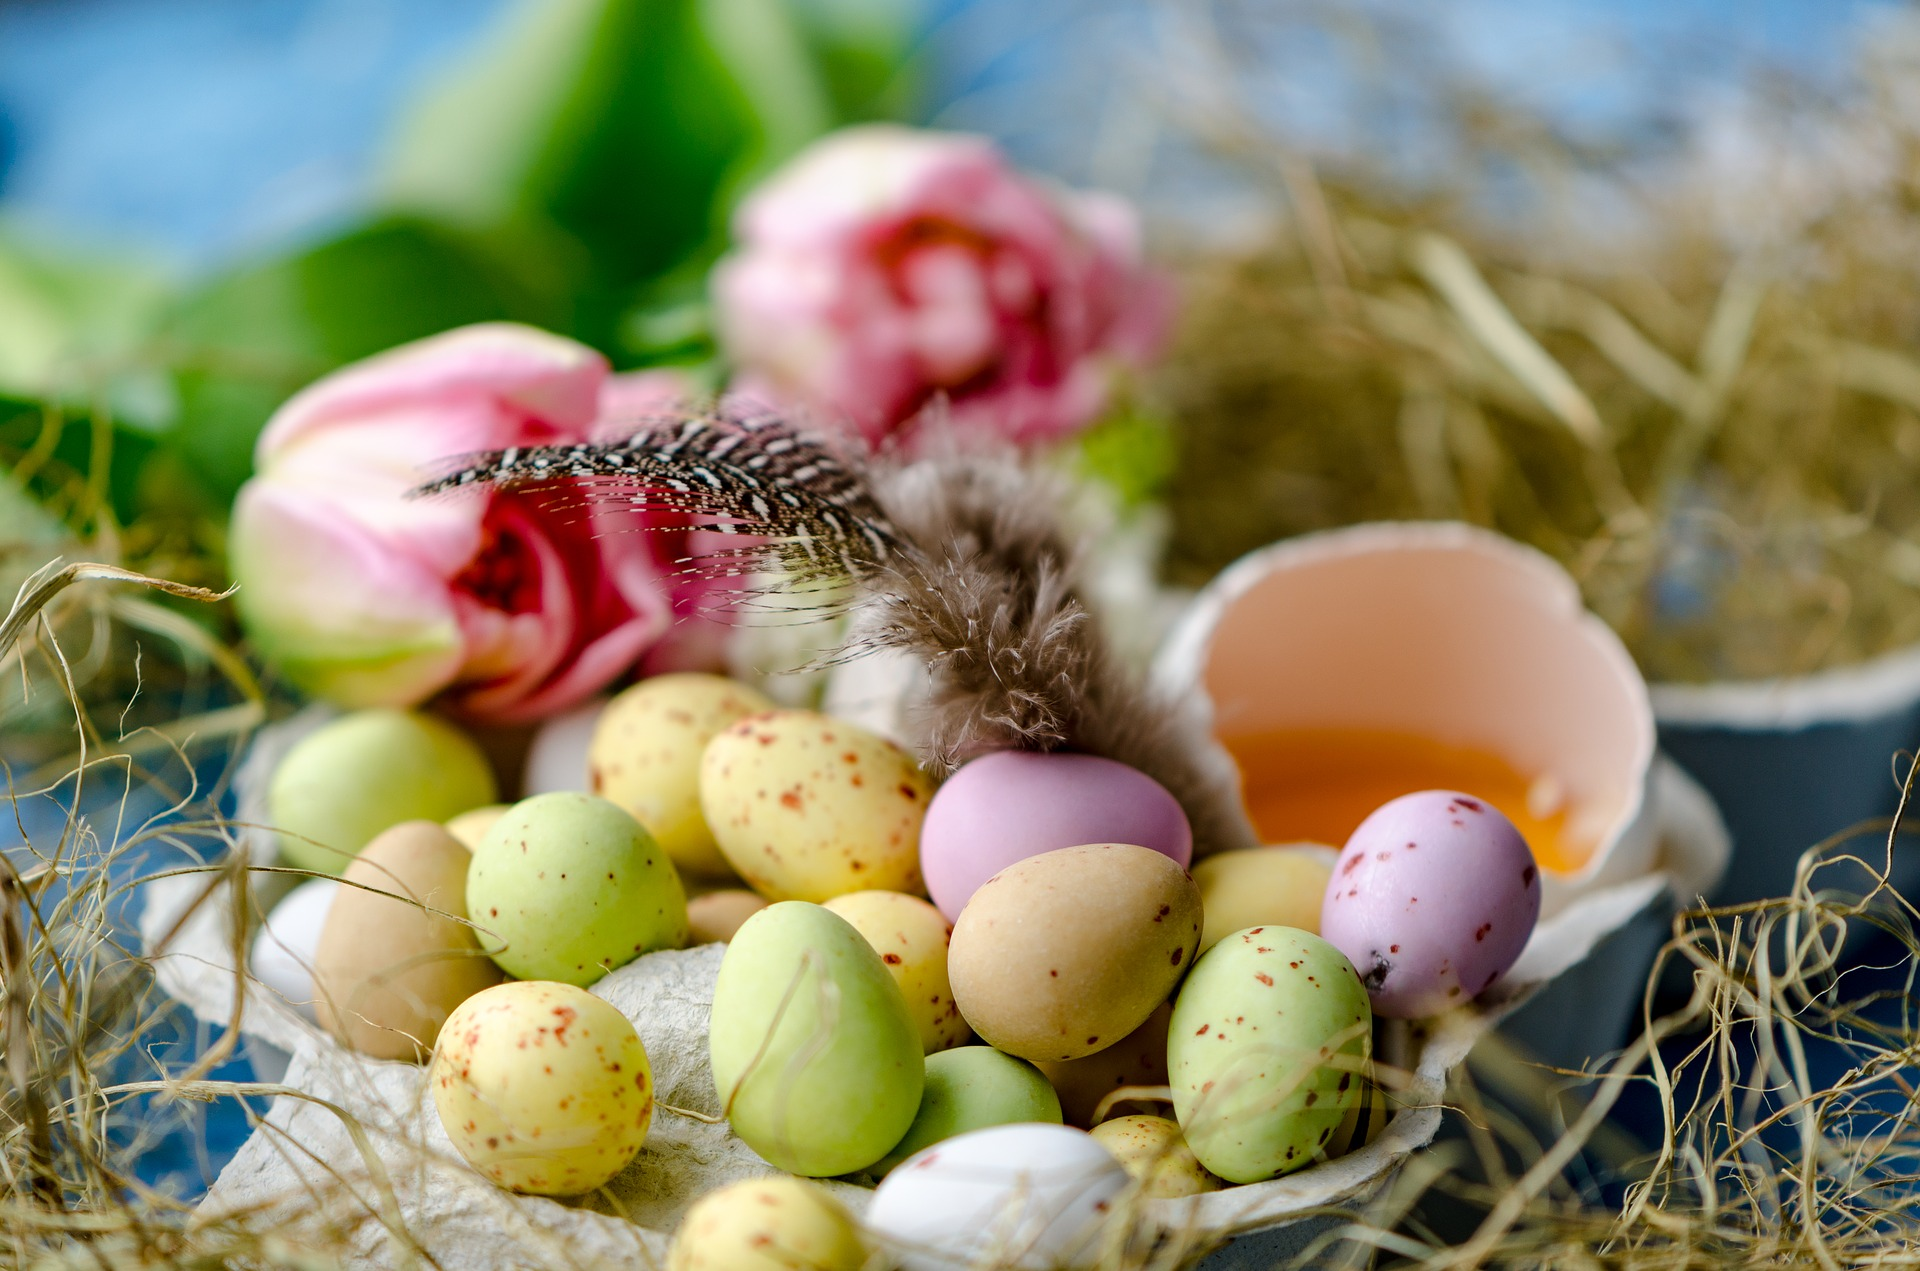 happy-easter-3260732_1920.jpg